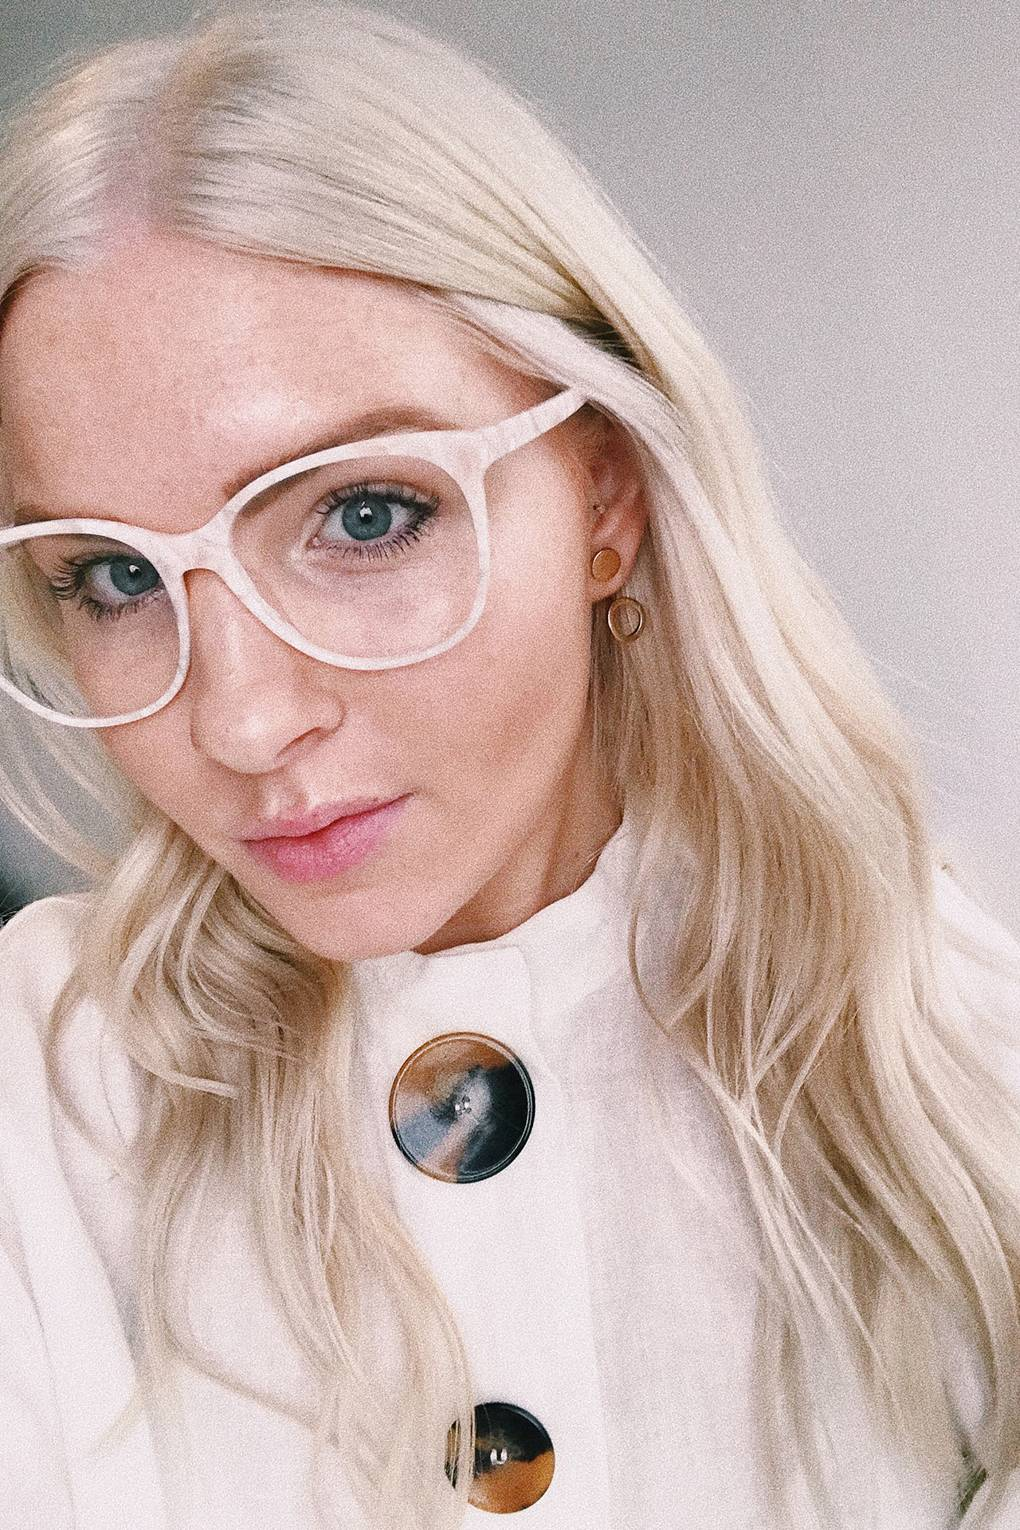 White Blonde Hair How To Go Platinum Blonde And Best Products